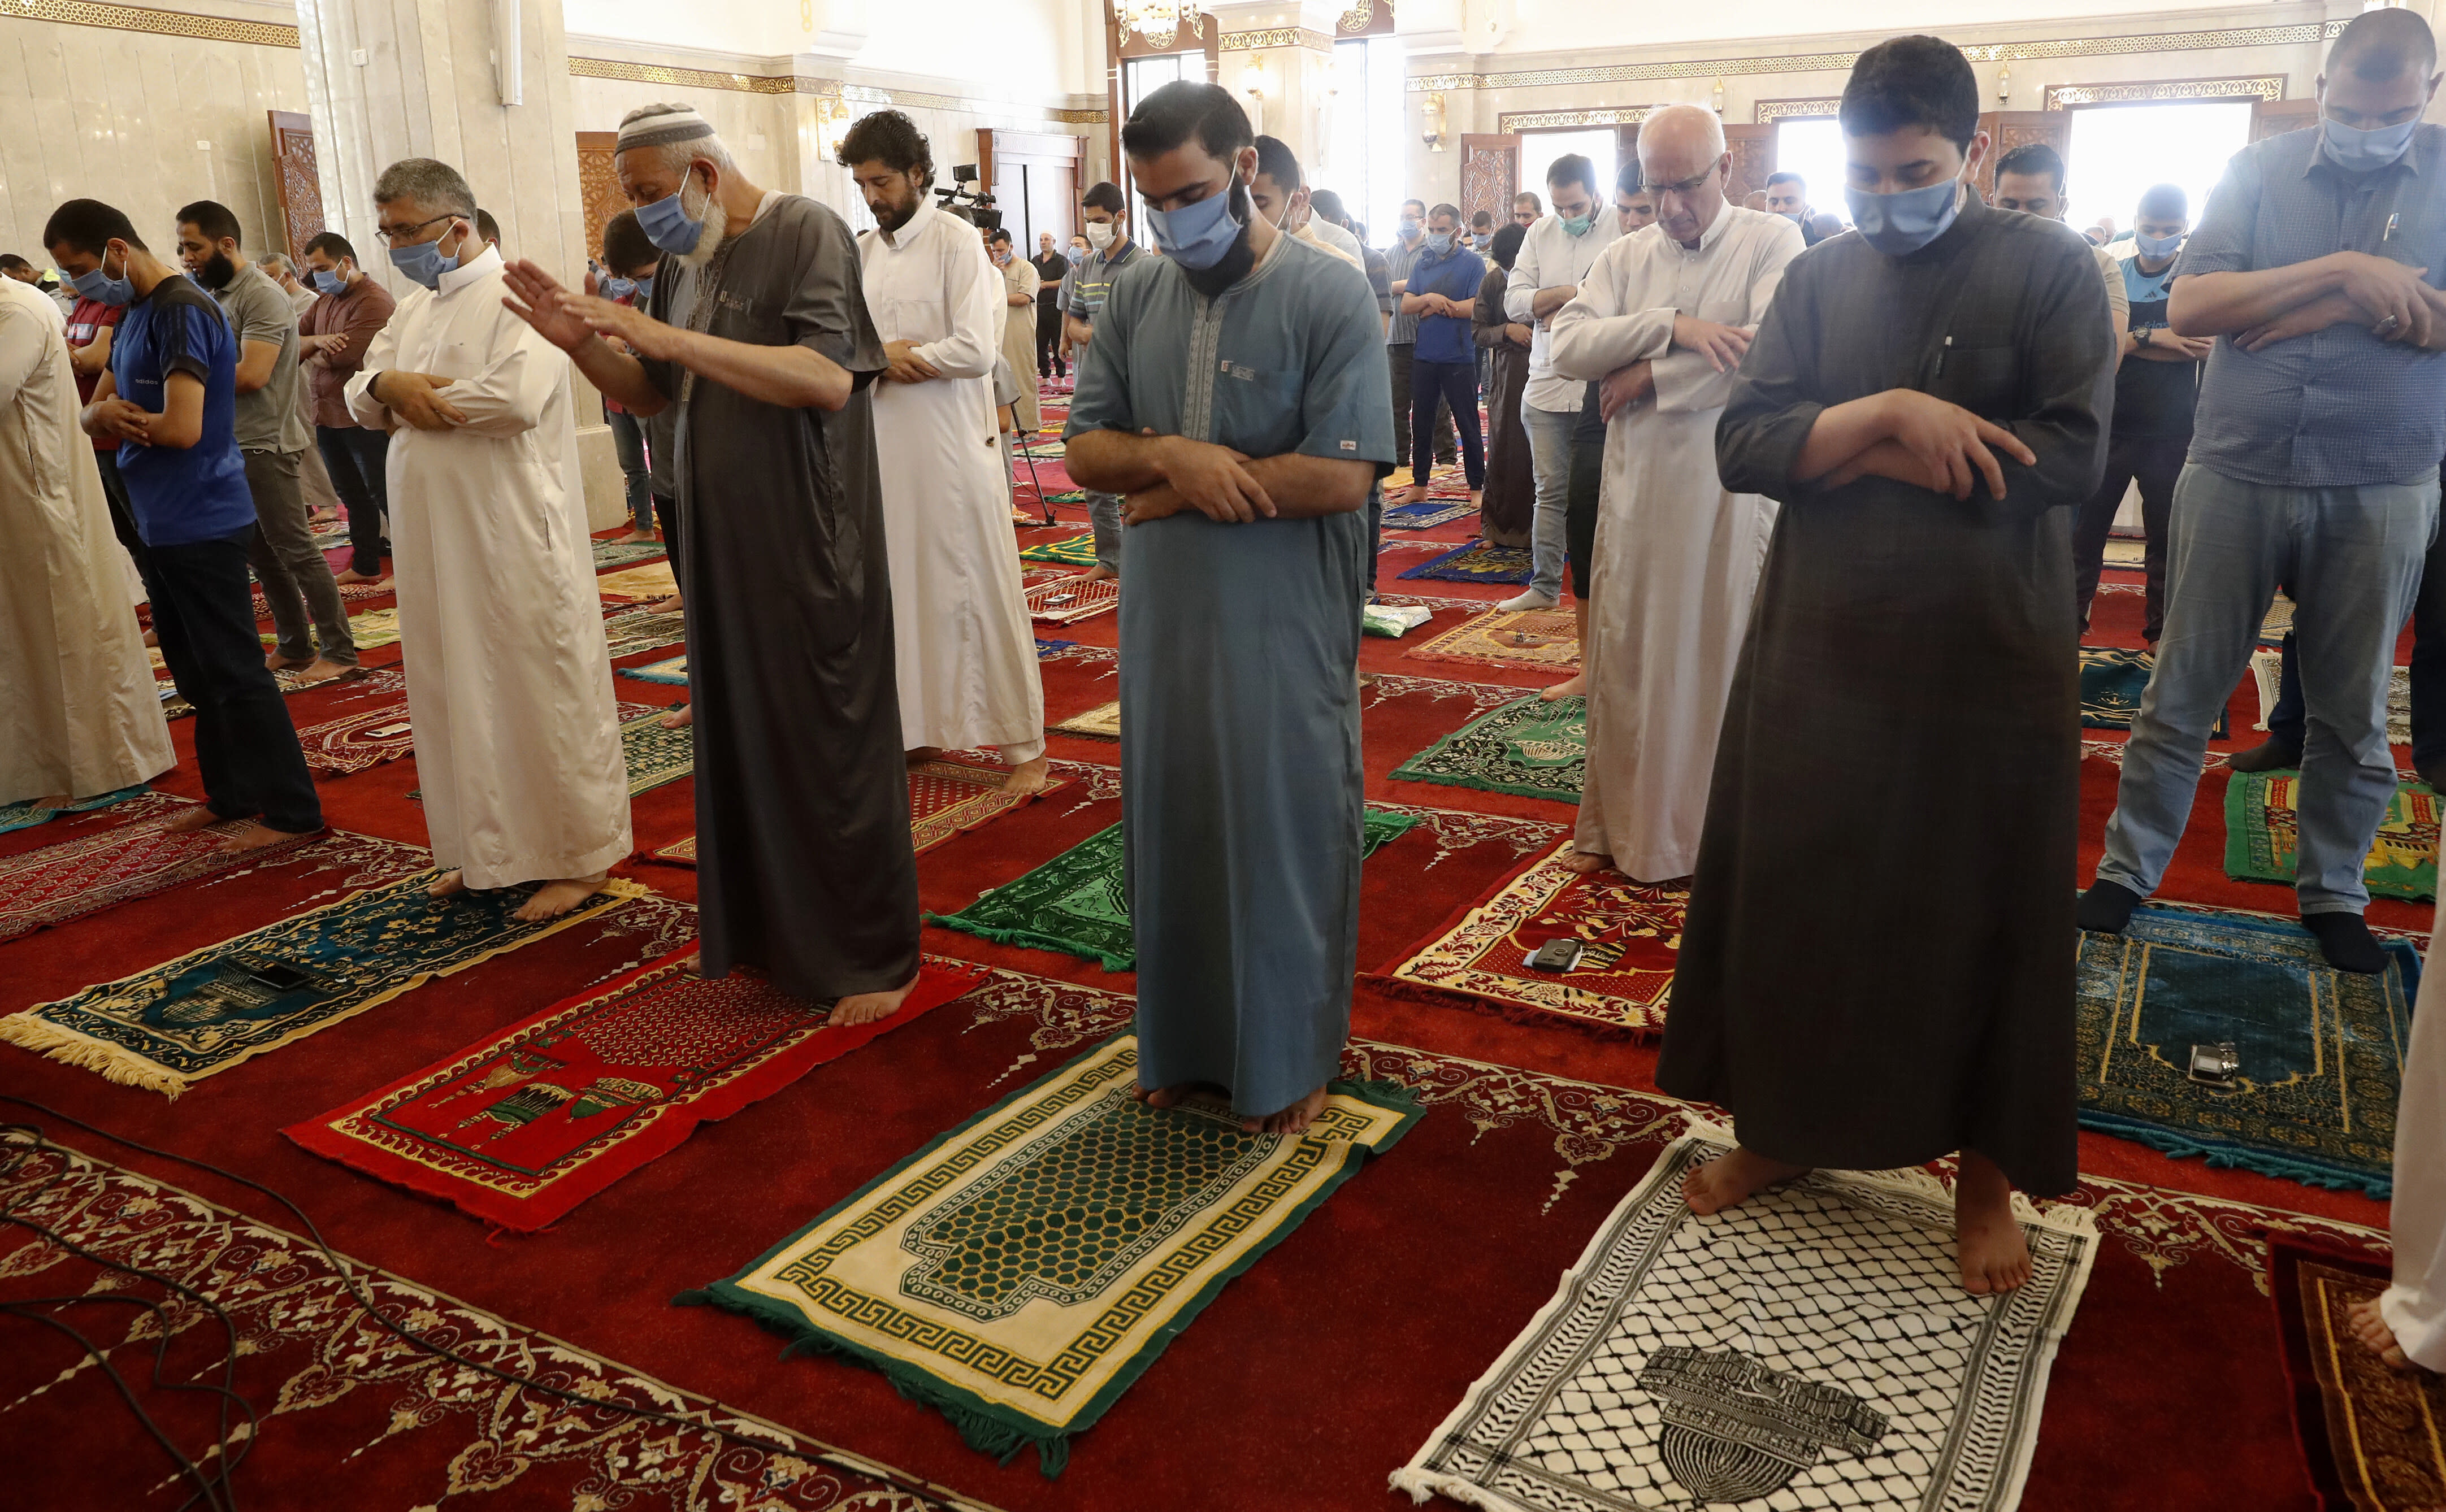 Palestinian worshippers wear protective face masks at the last Friday prayer of the holy fasting month of Ramadan, to prevent the spread of coronavirus pandemic, at al-Hasaynih beach mosque in Gaza City, Friday, May 22, 2020. Palestinian worshippers are filling Gaza's mosques as they open for the central Friday prayers after nearly two months of closure due to the coronavirus threat. (AP Photo/Adel Hana)